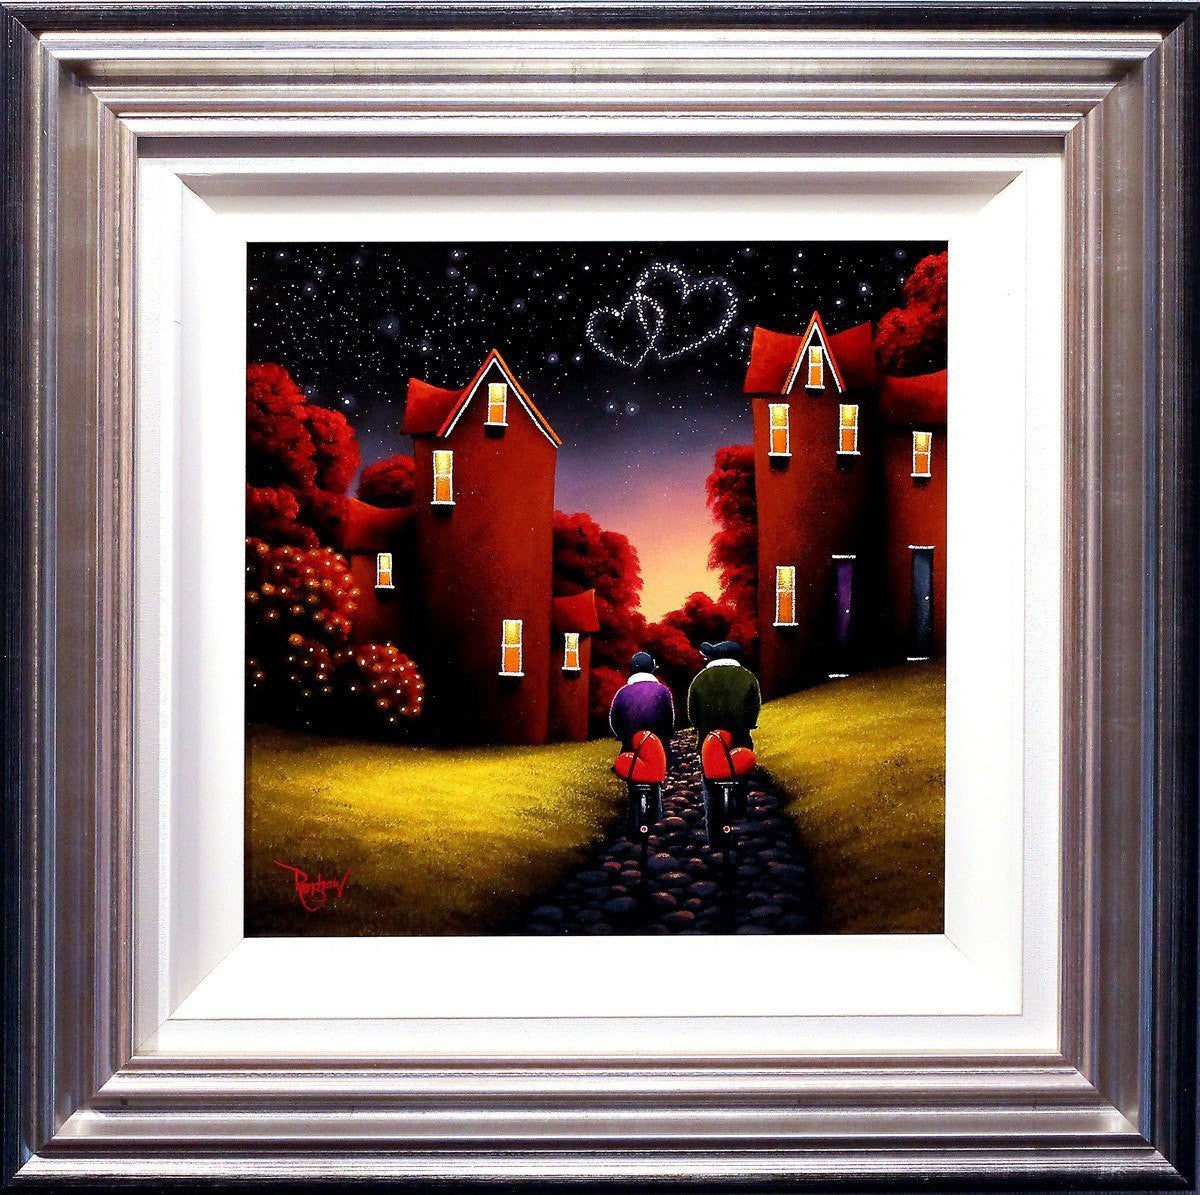 Late Night Ride - SOLD David Renshaw